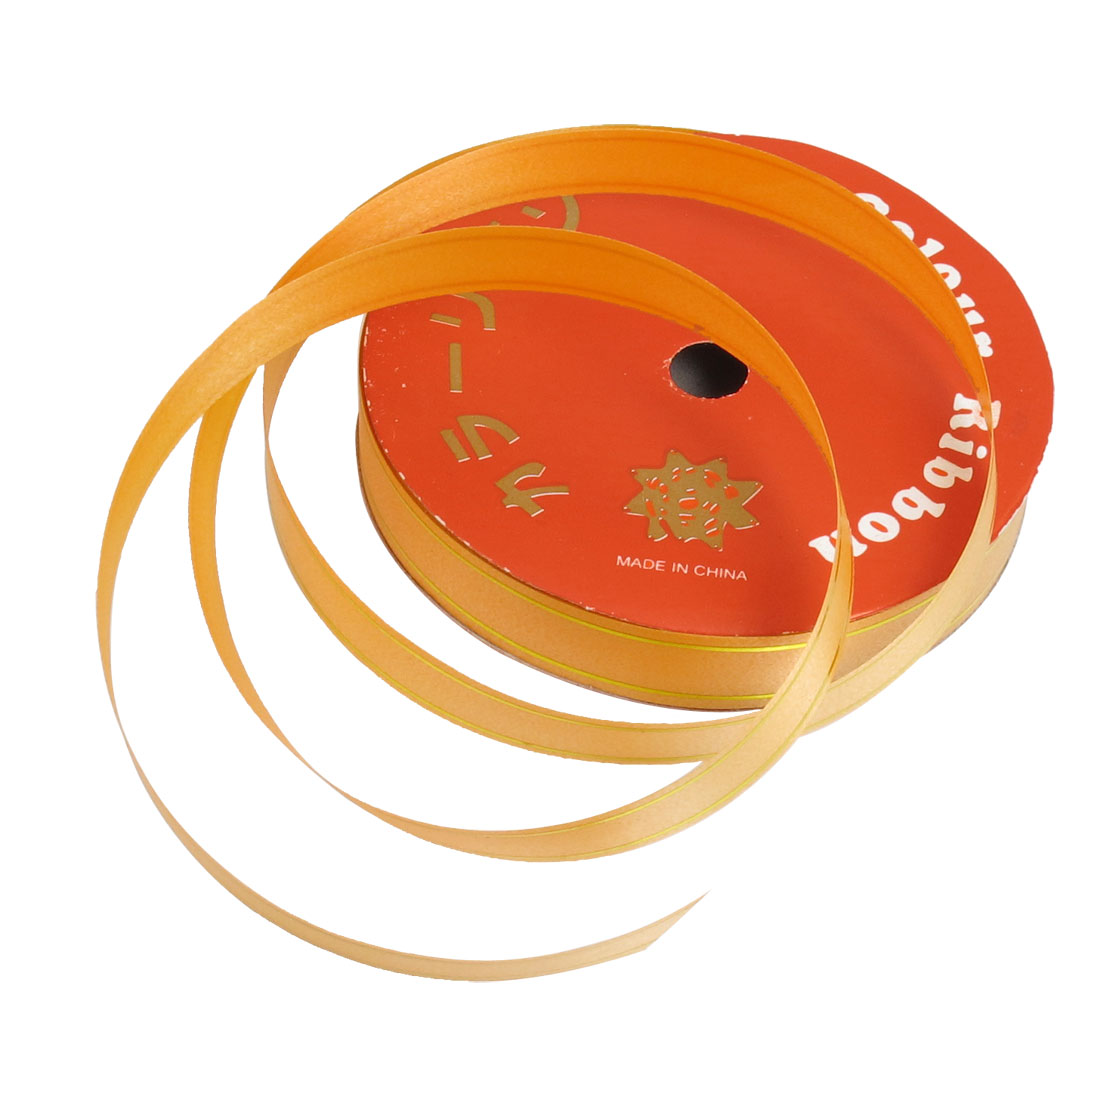 Gift Wrap Dual Gold Tone Edge Decor Orange Ribbon Roll